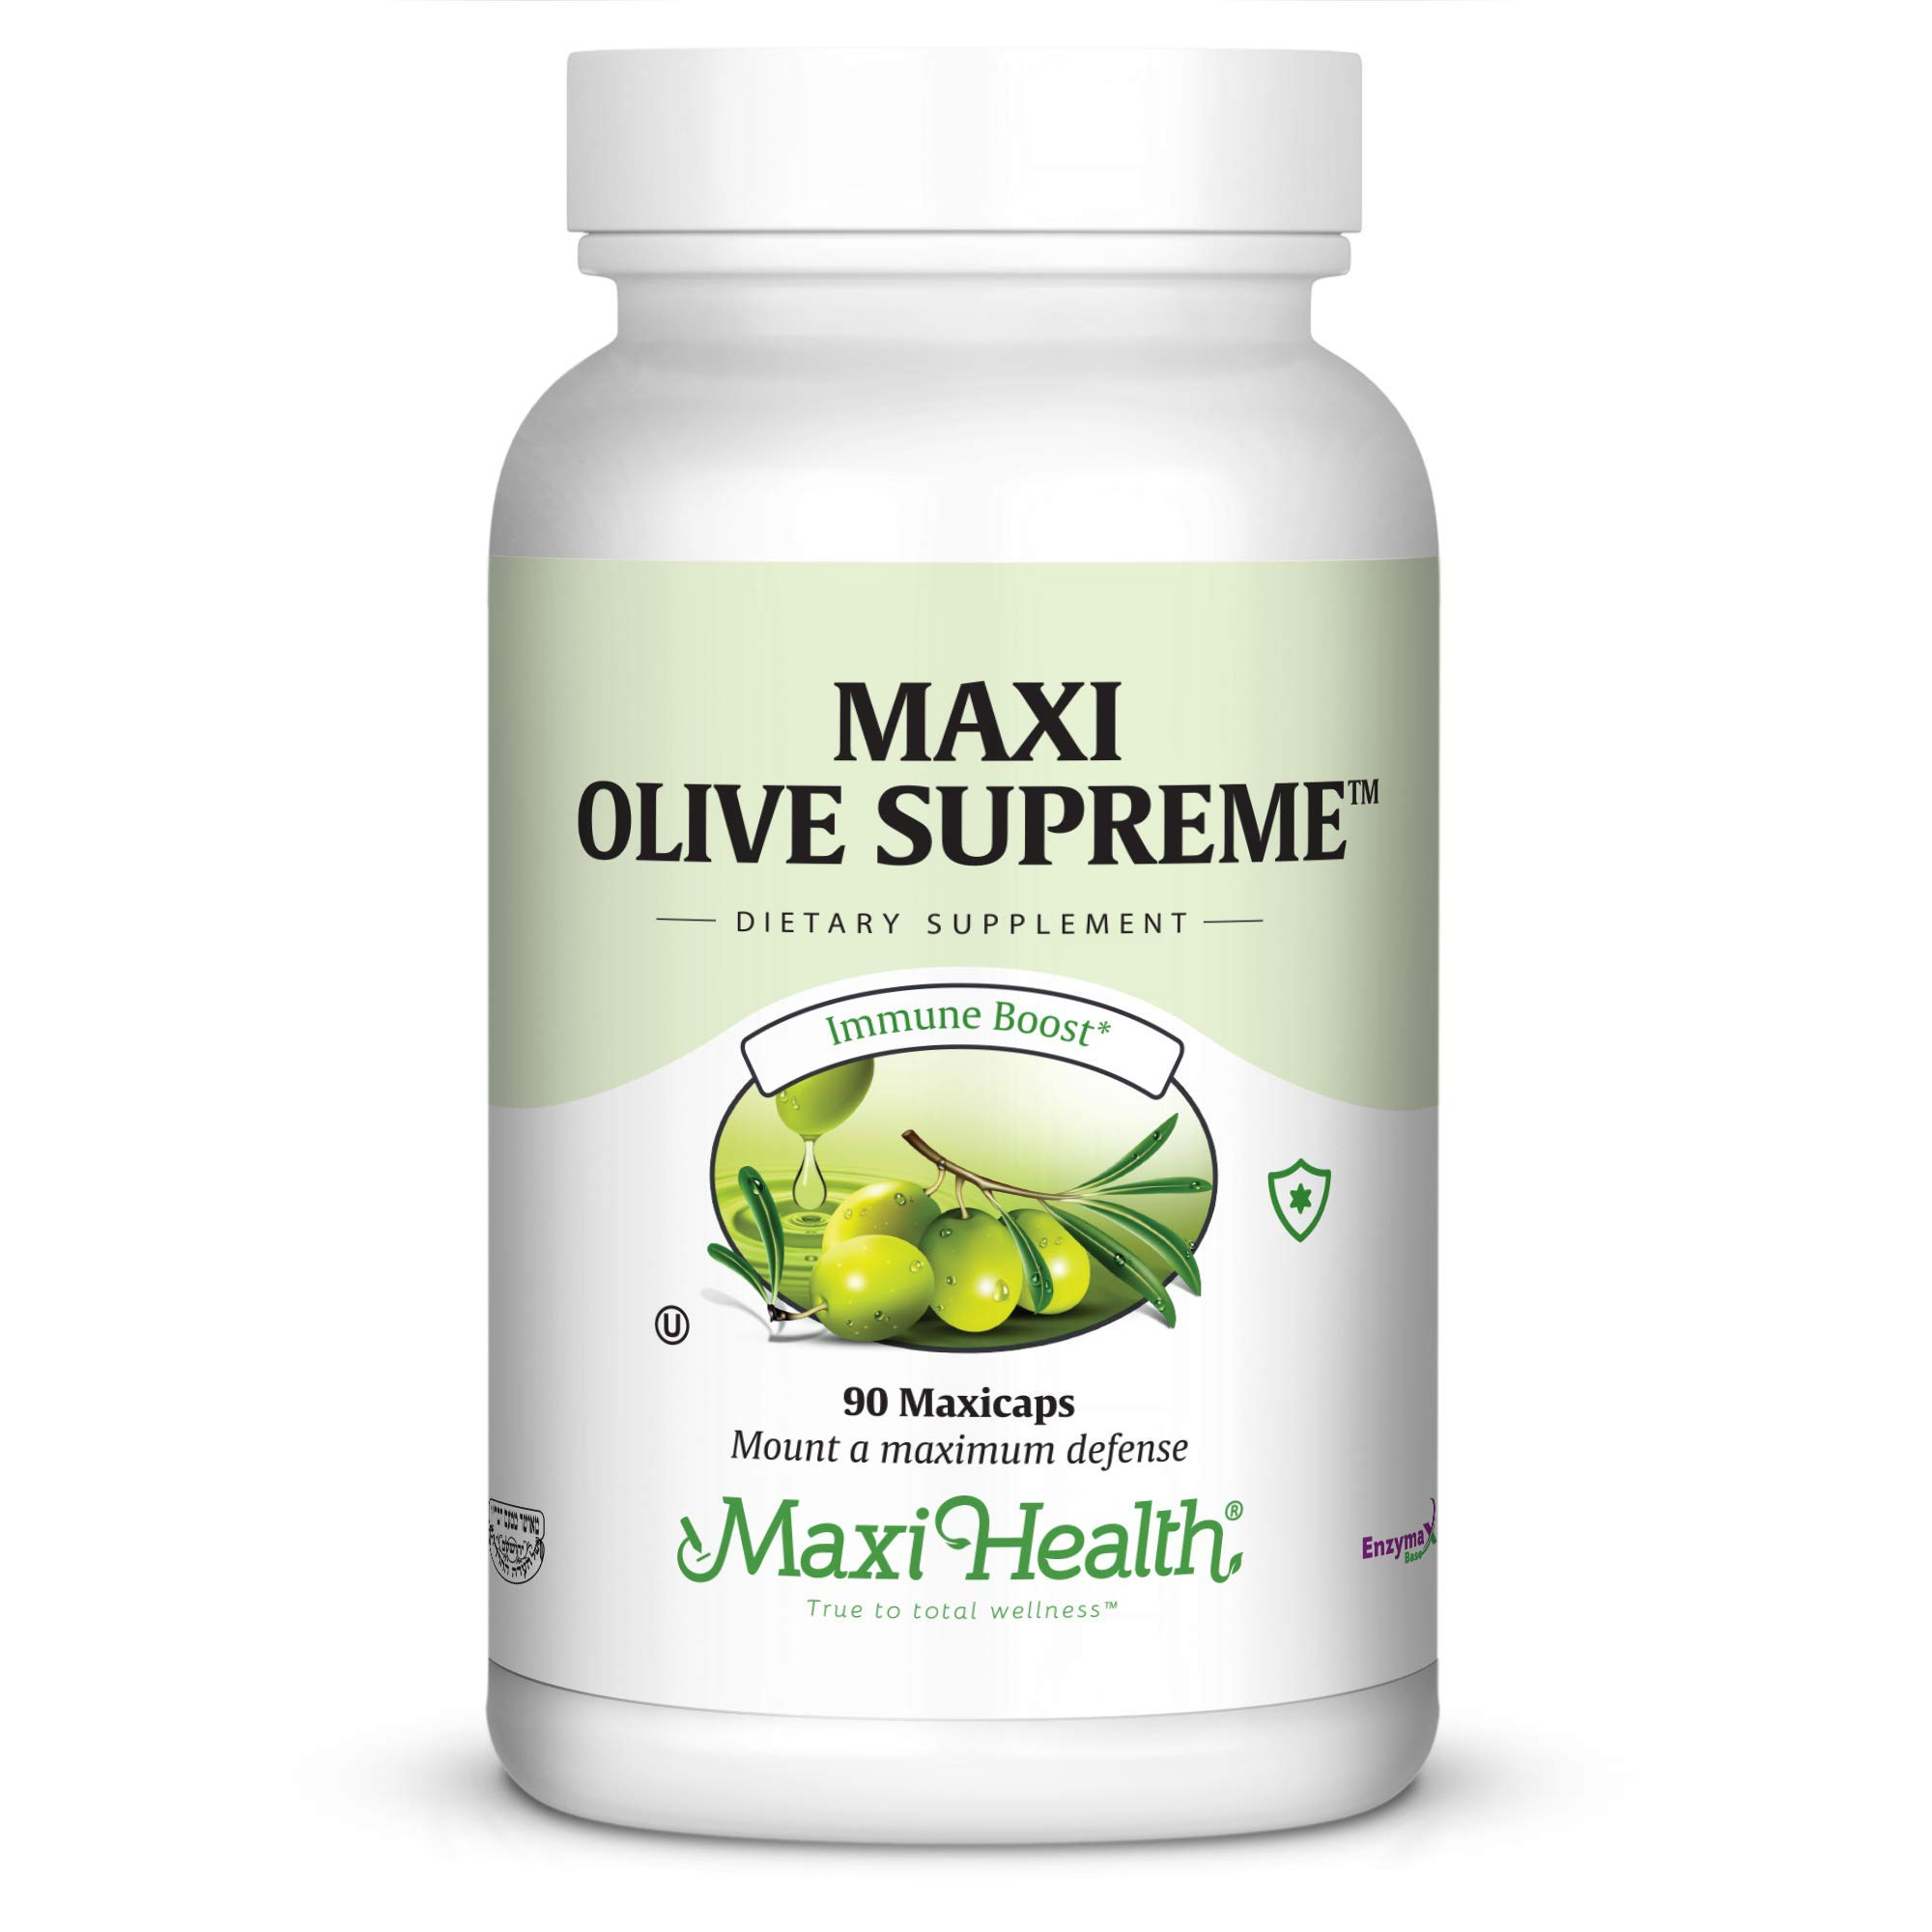 Maxi Health Olive Supreme - Olive Leaf Extract Supplement- Immune Booster - 90 Capsules - Kosher